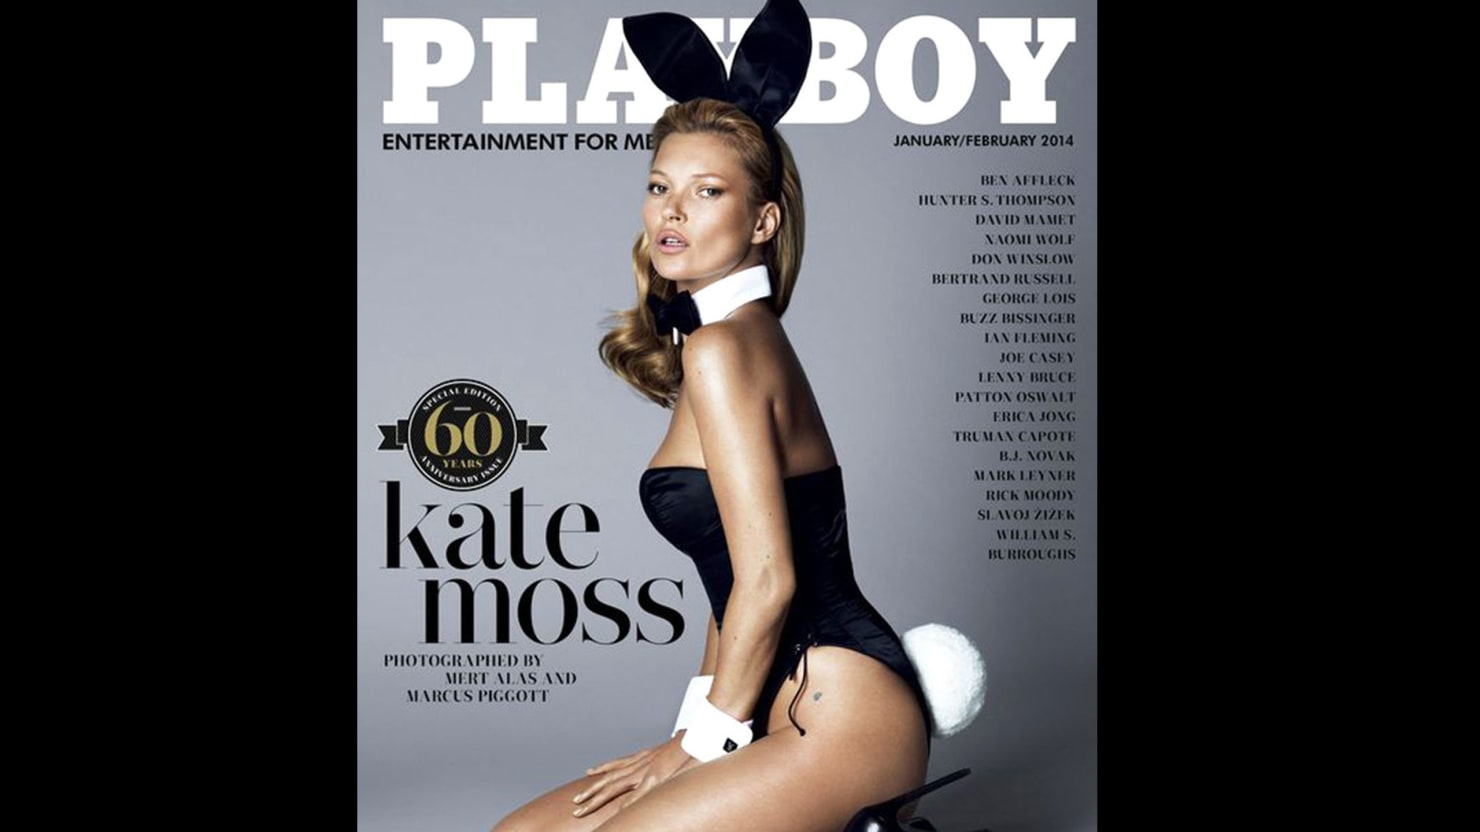 Not So Fast, 'Playboy': the Kate Moss Cover May Not Be a Big Turning Point